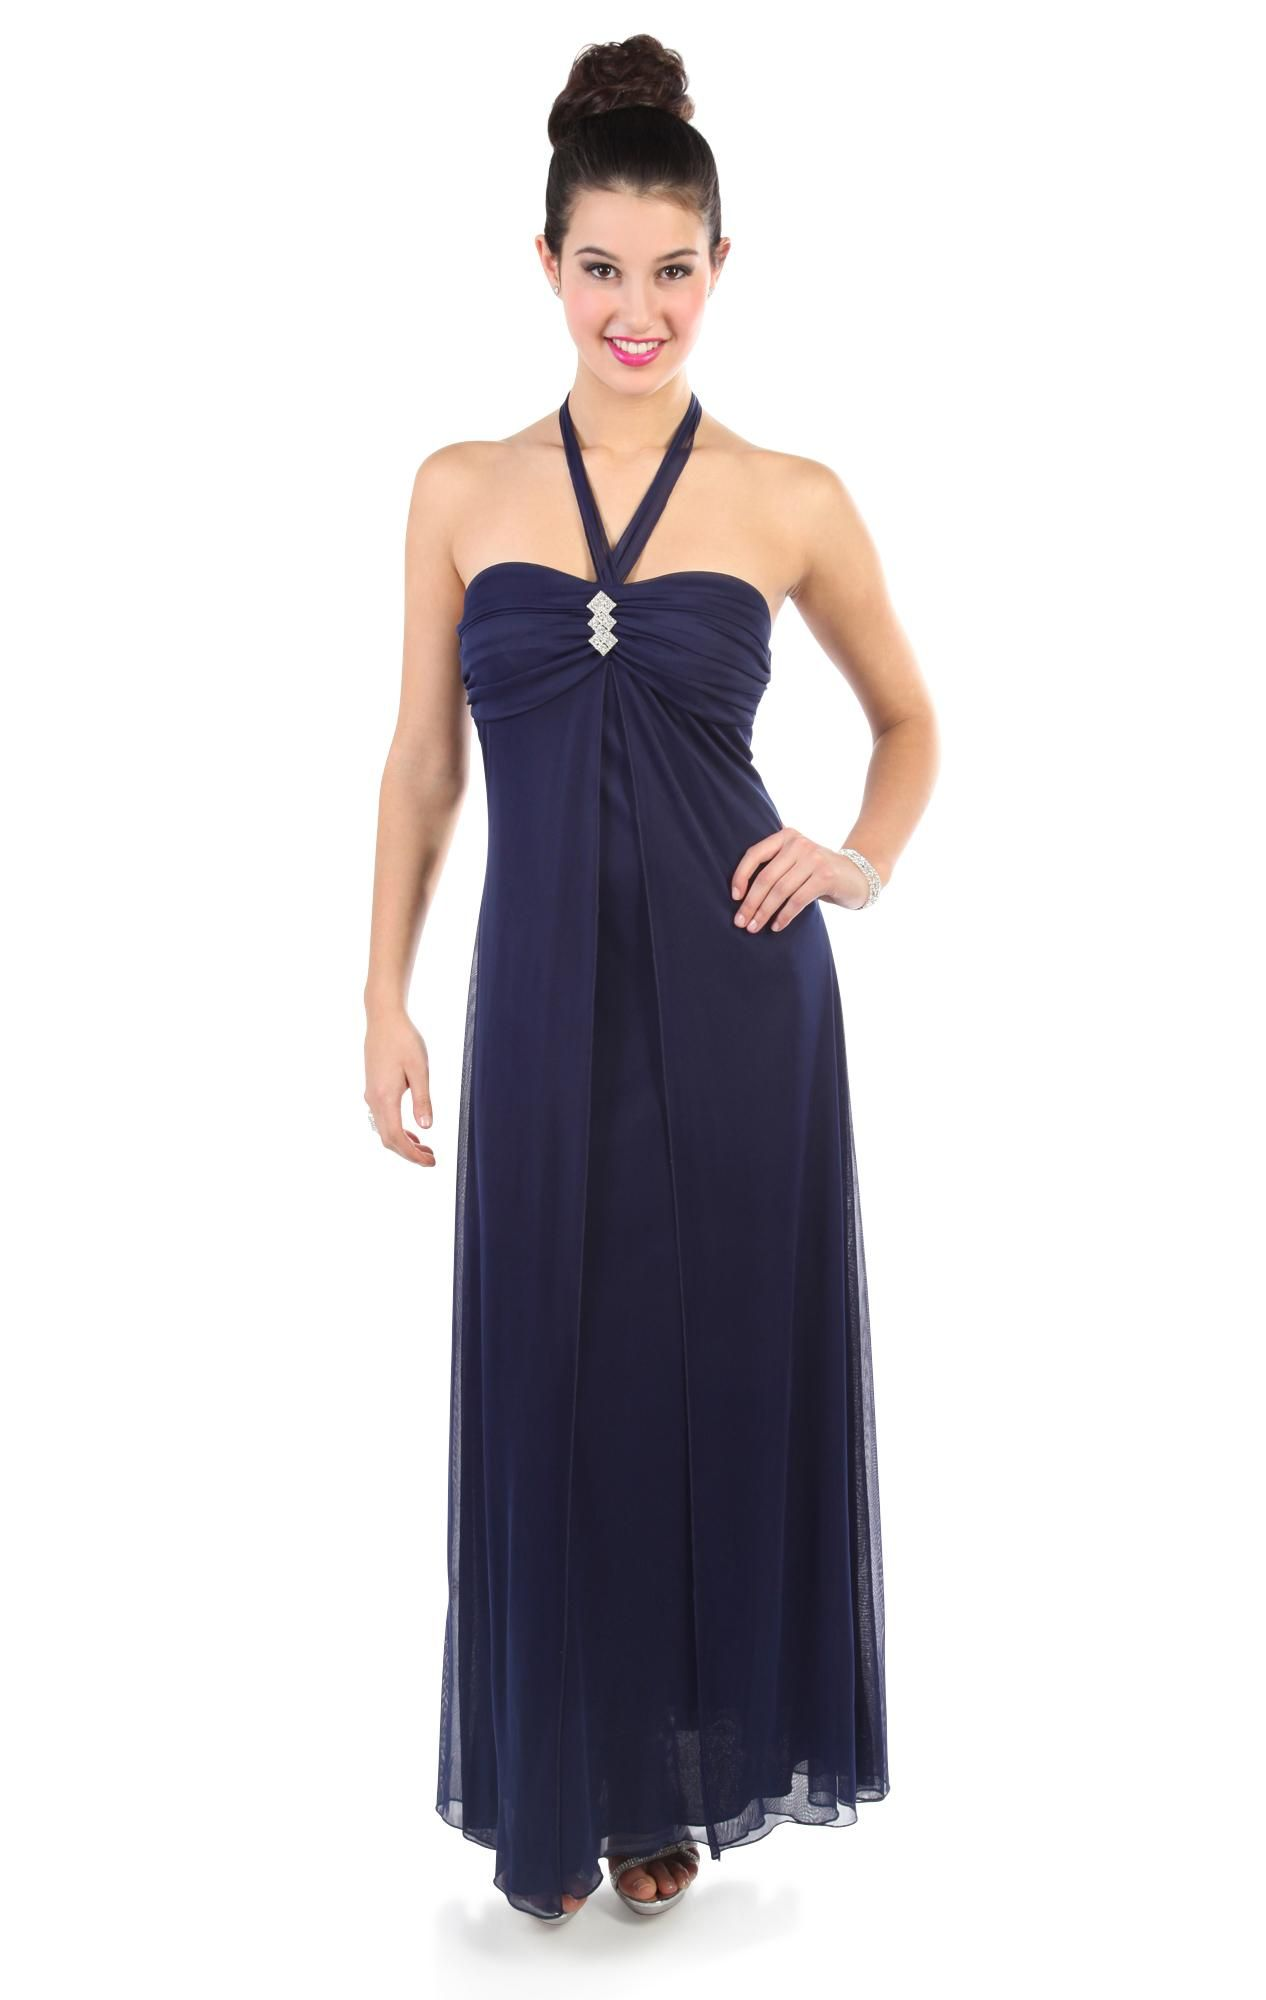 Sweetheart tie halter long prom dress with fly away skirt special